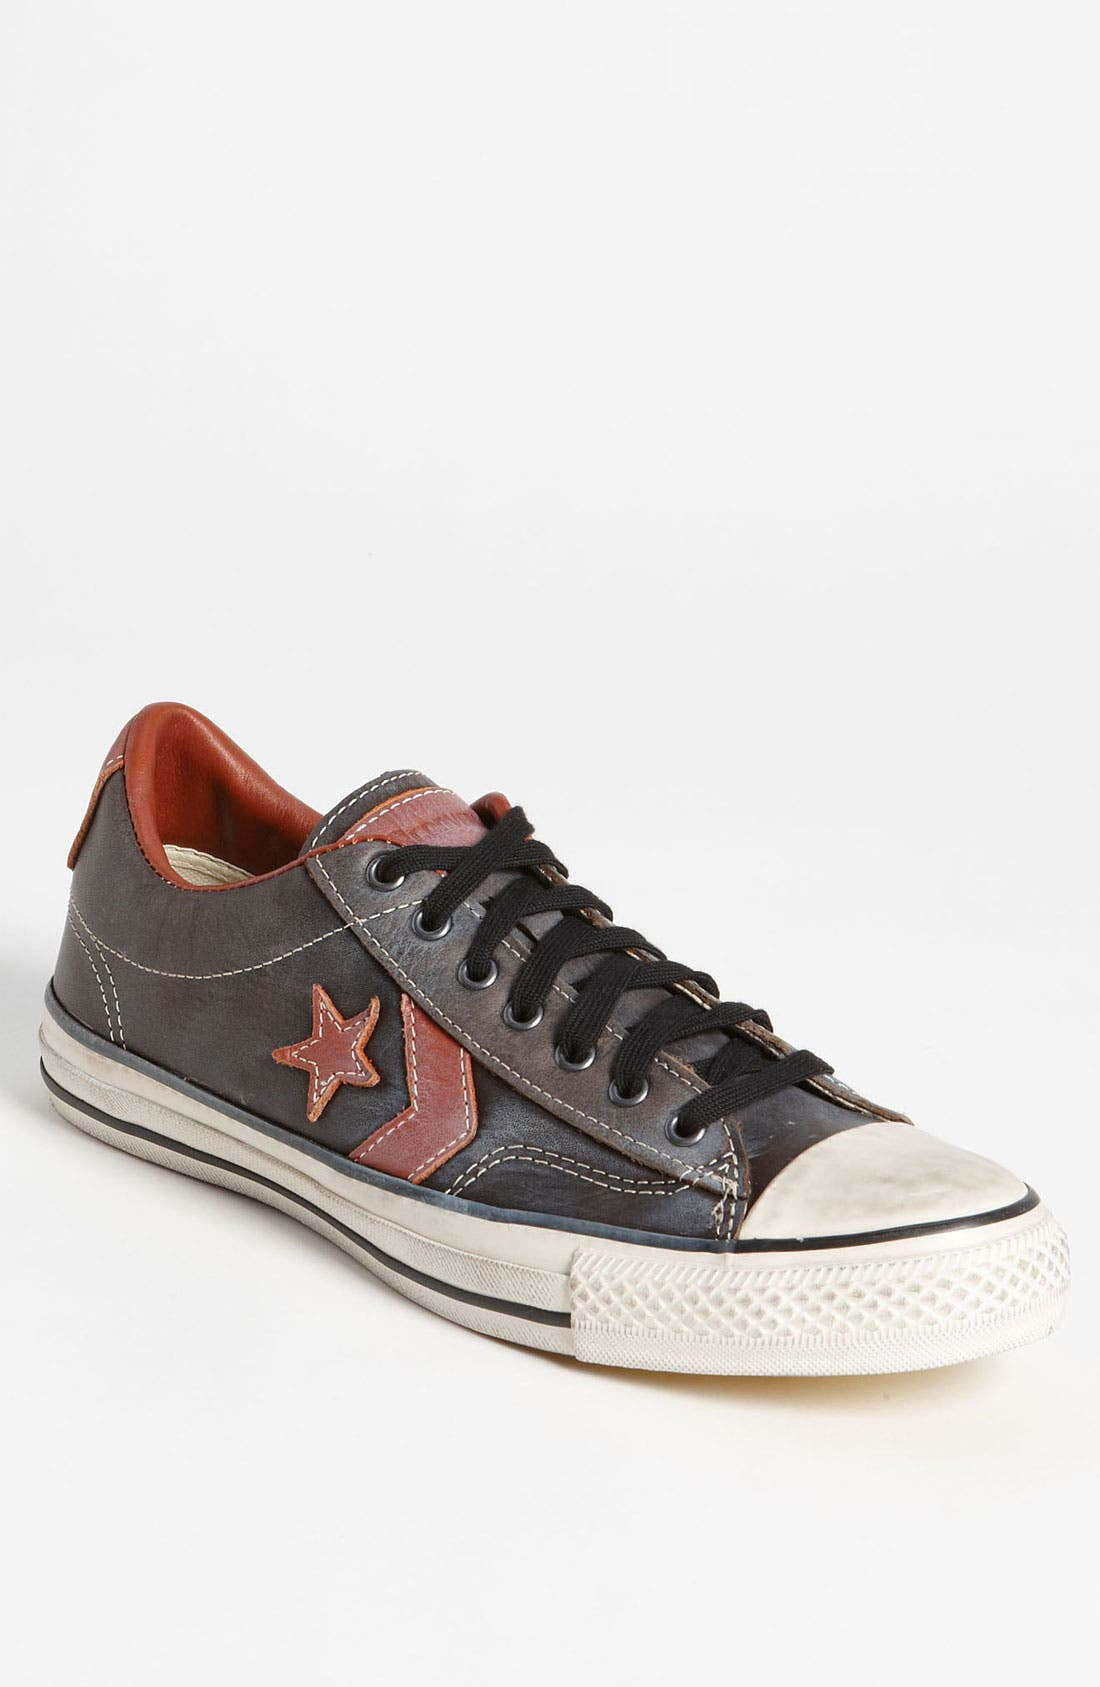 Alternate Image 1 Selected - Converse by John Varvatos 'Star Player' Sneaker (Men)